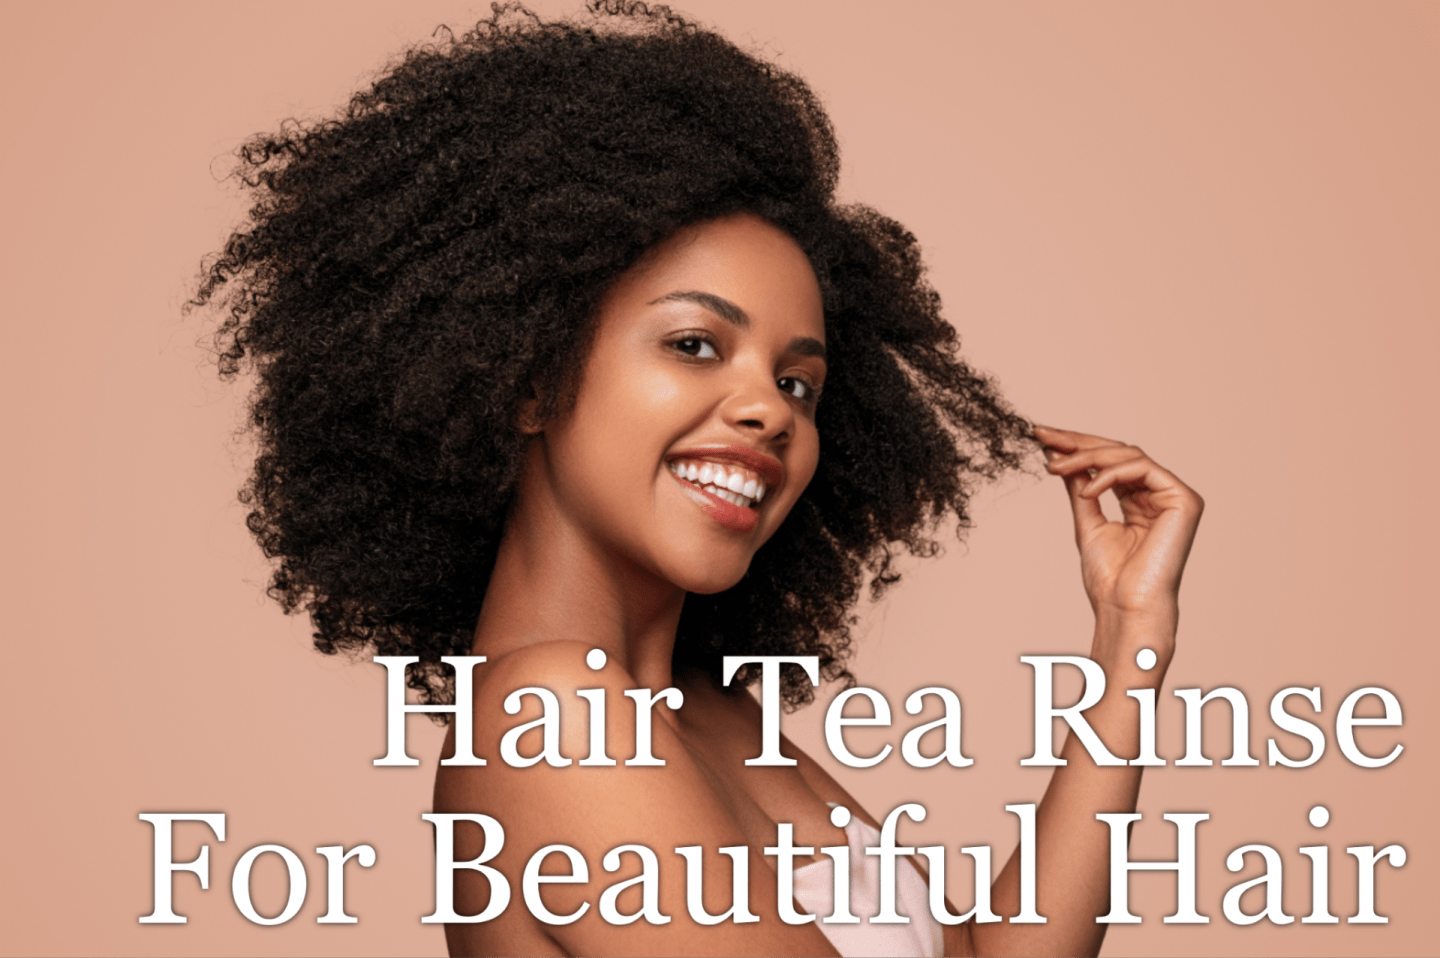 Using a hair tea rinse is one of the best ways to combat hair shedding, ddryness and even keeping your hair color vibrant. The uses are vast and worth it!